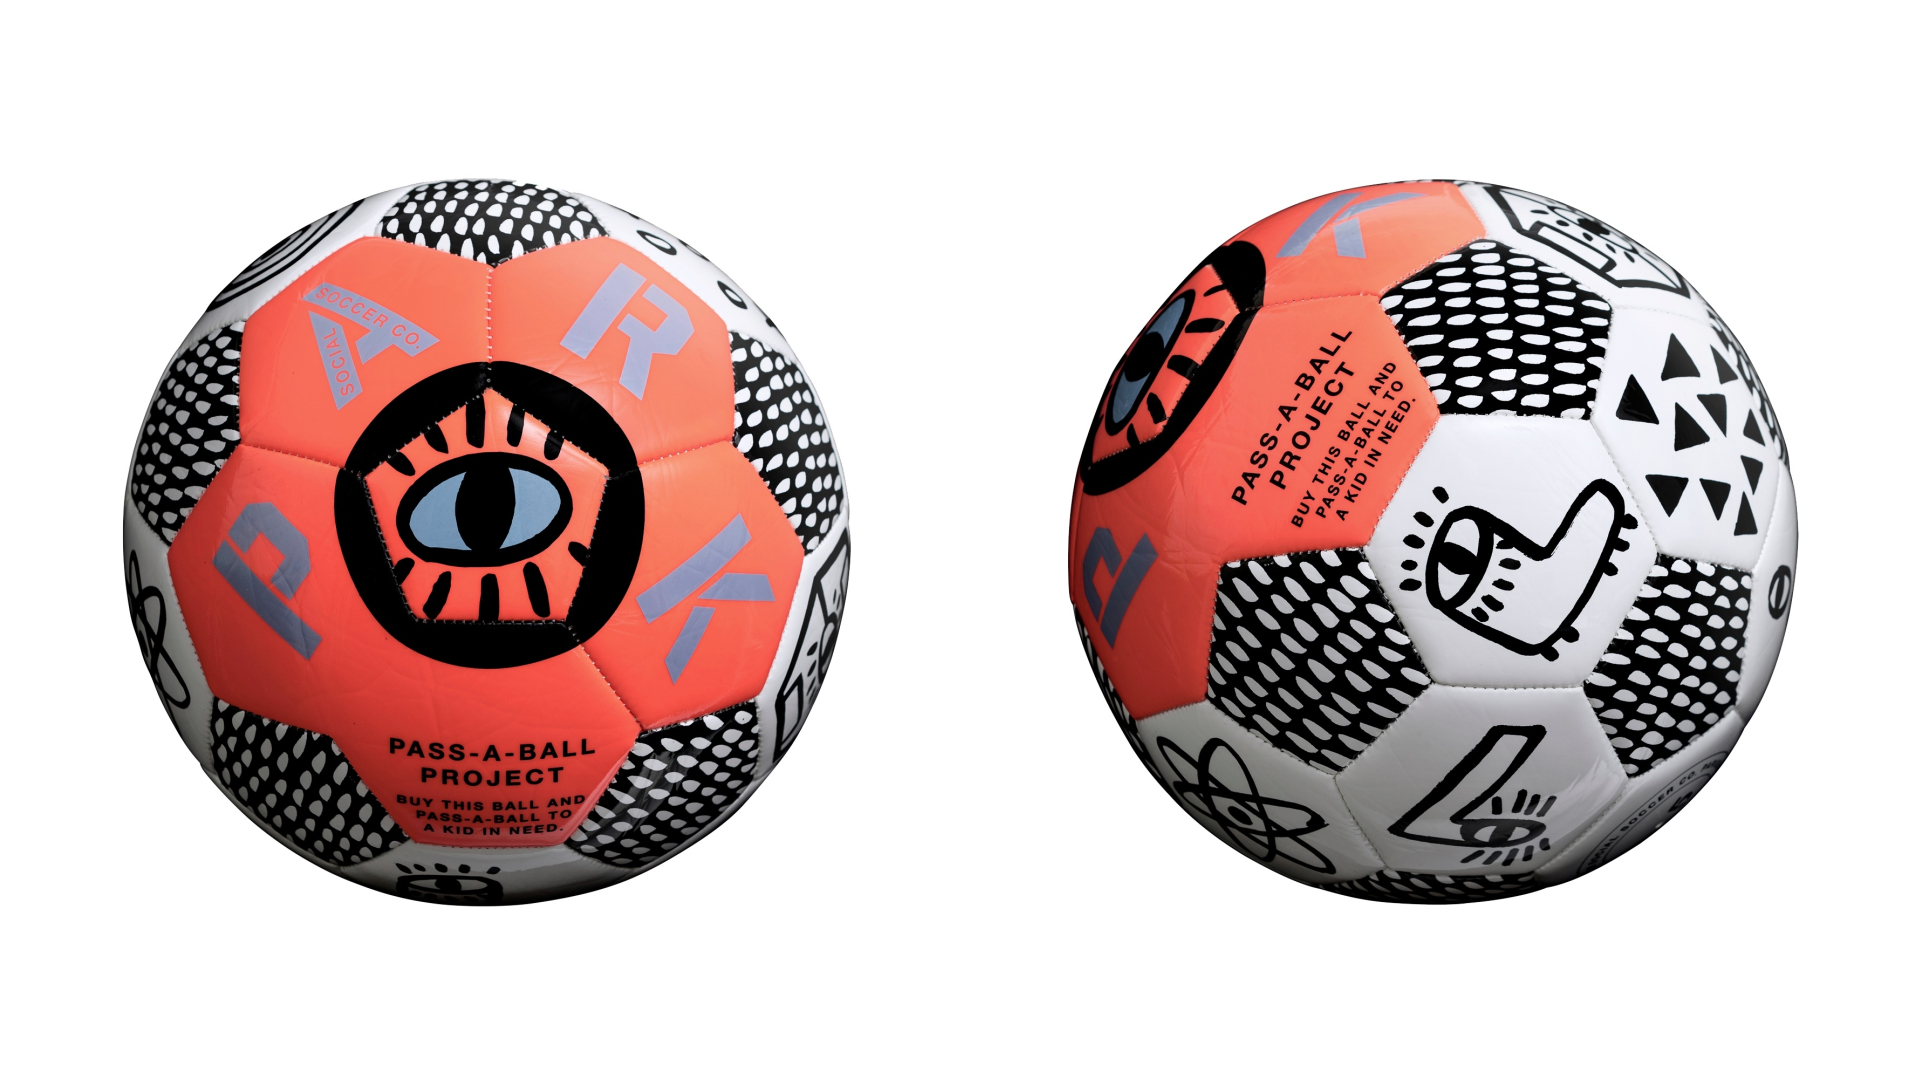 A football designed by PARK Social Soccer Co